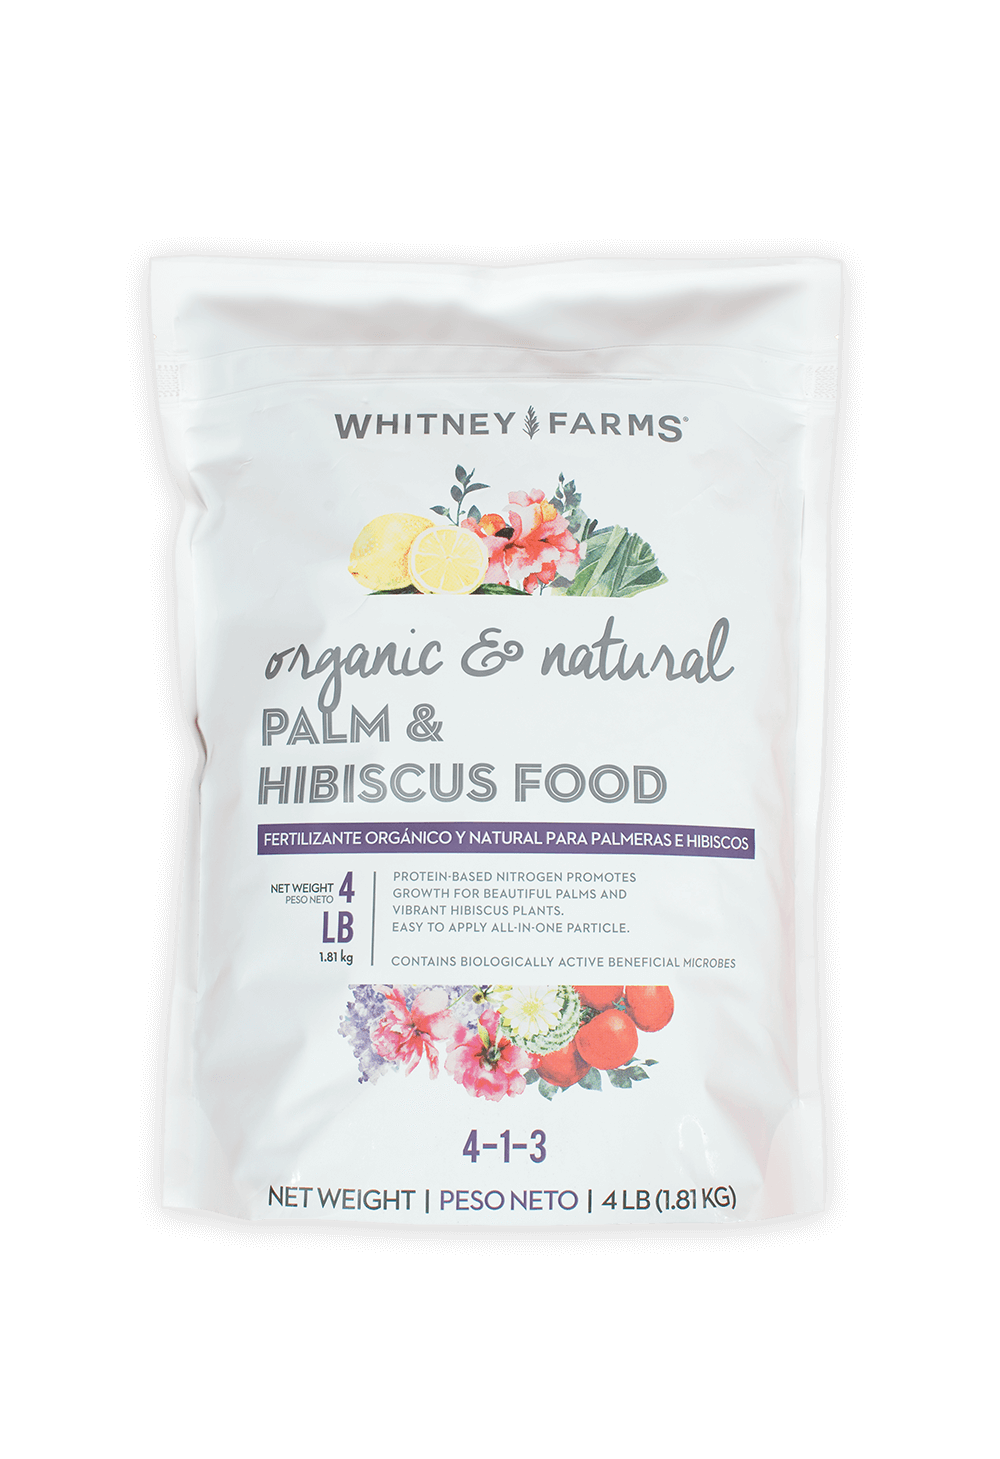 Palm & Hibiscus Food